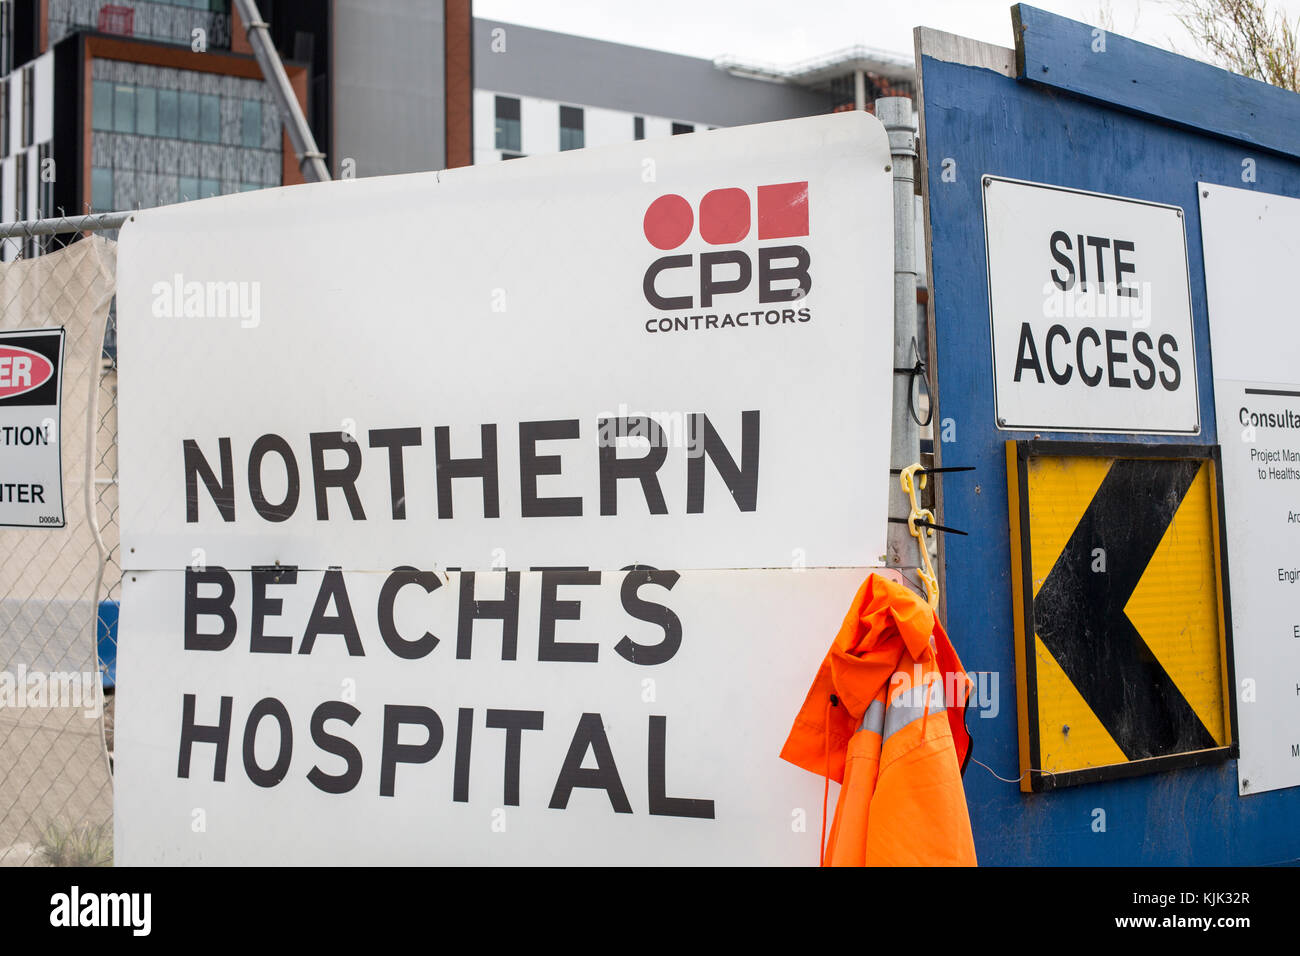 Construction of the Northern Beaches Hospital Frenchs Forest Sydney for Healthscope who will operate this hospital - Stock Image